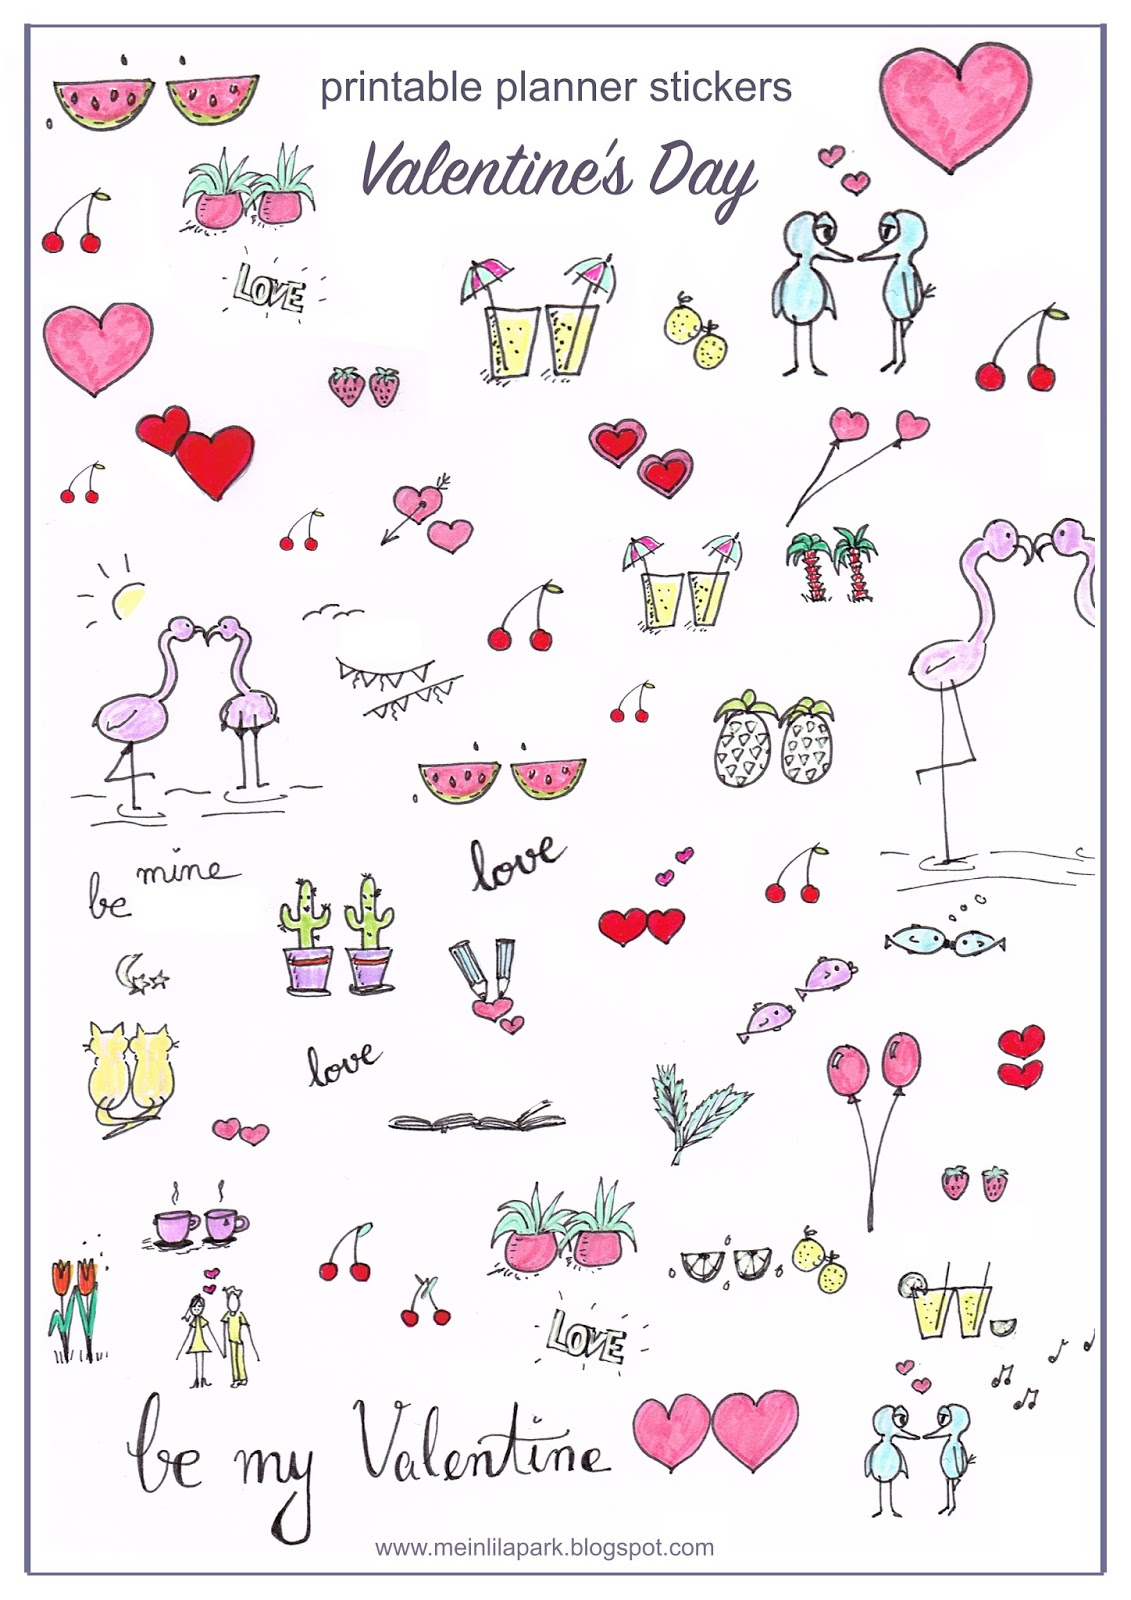 Free Printable Planner Stickers With Lots Of Love Stickers